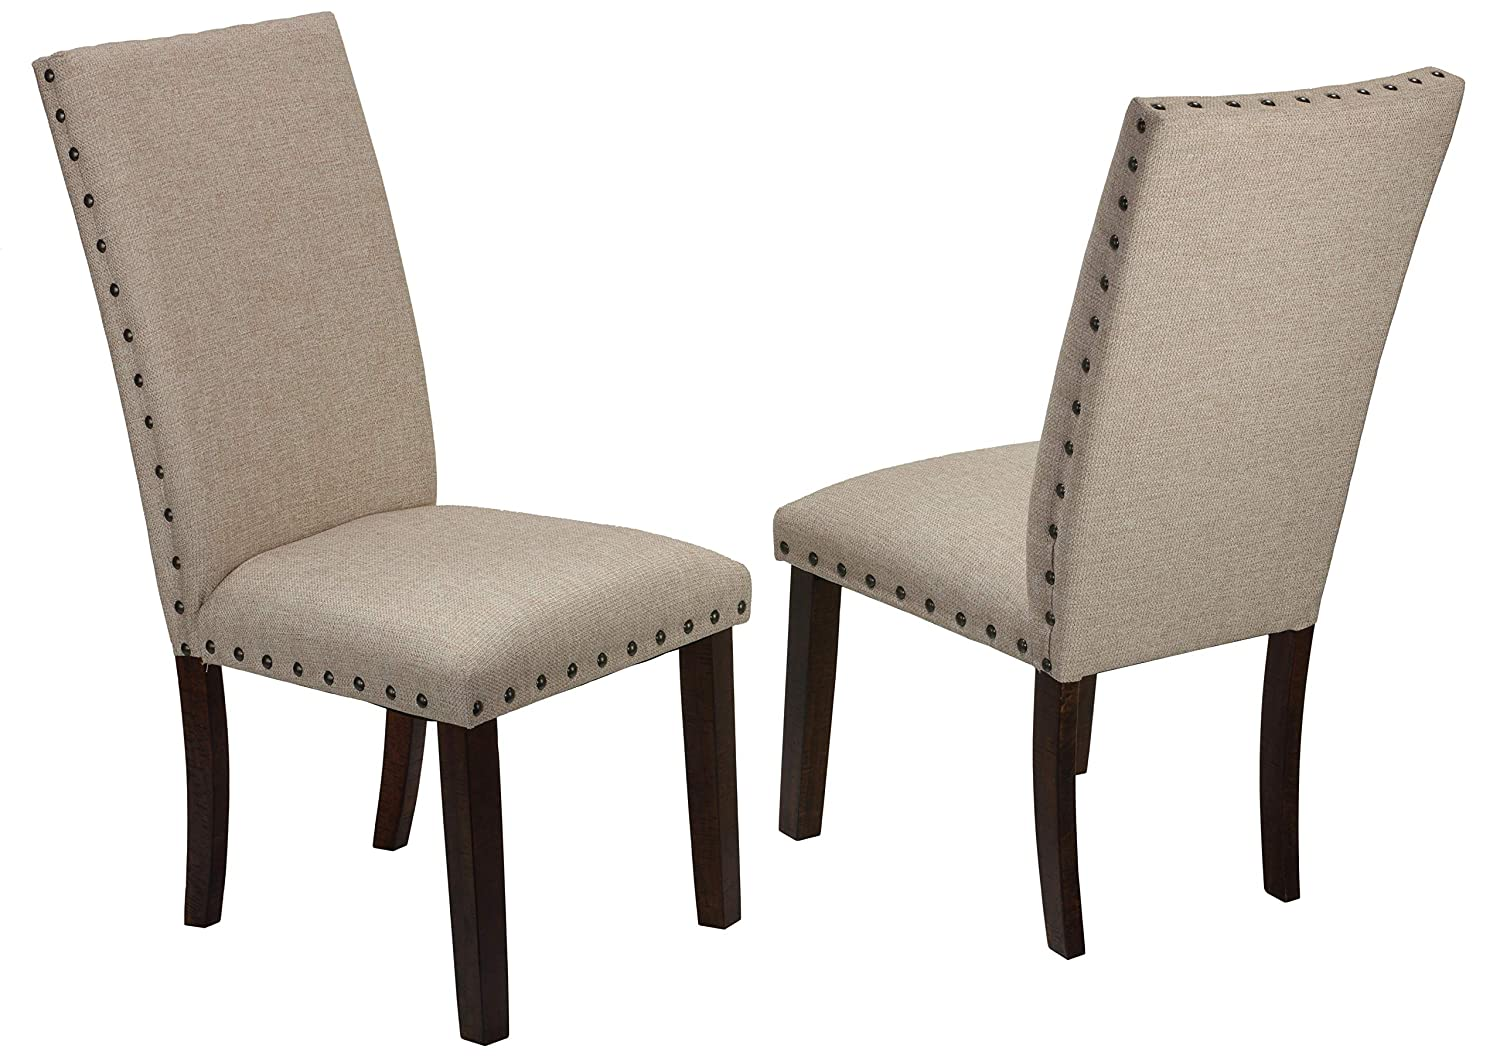 Cortesi Home Figi Dining Chair, Fabric with Nailhead Trim, Set of 2